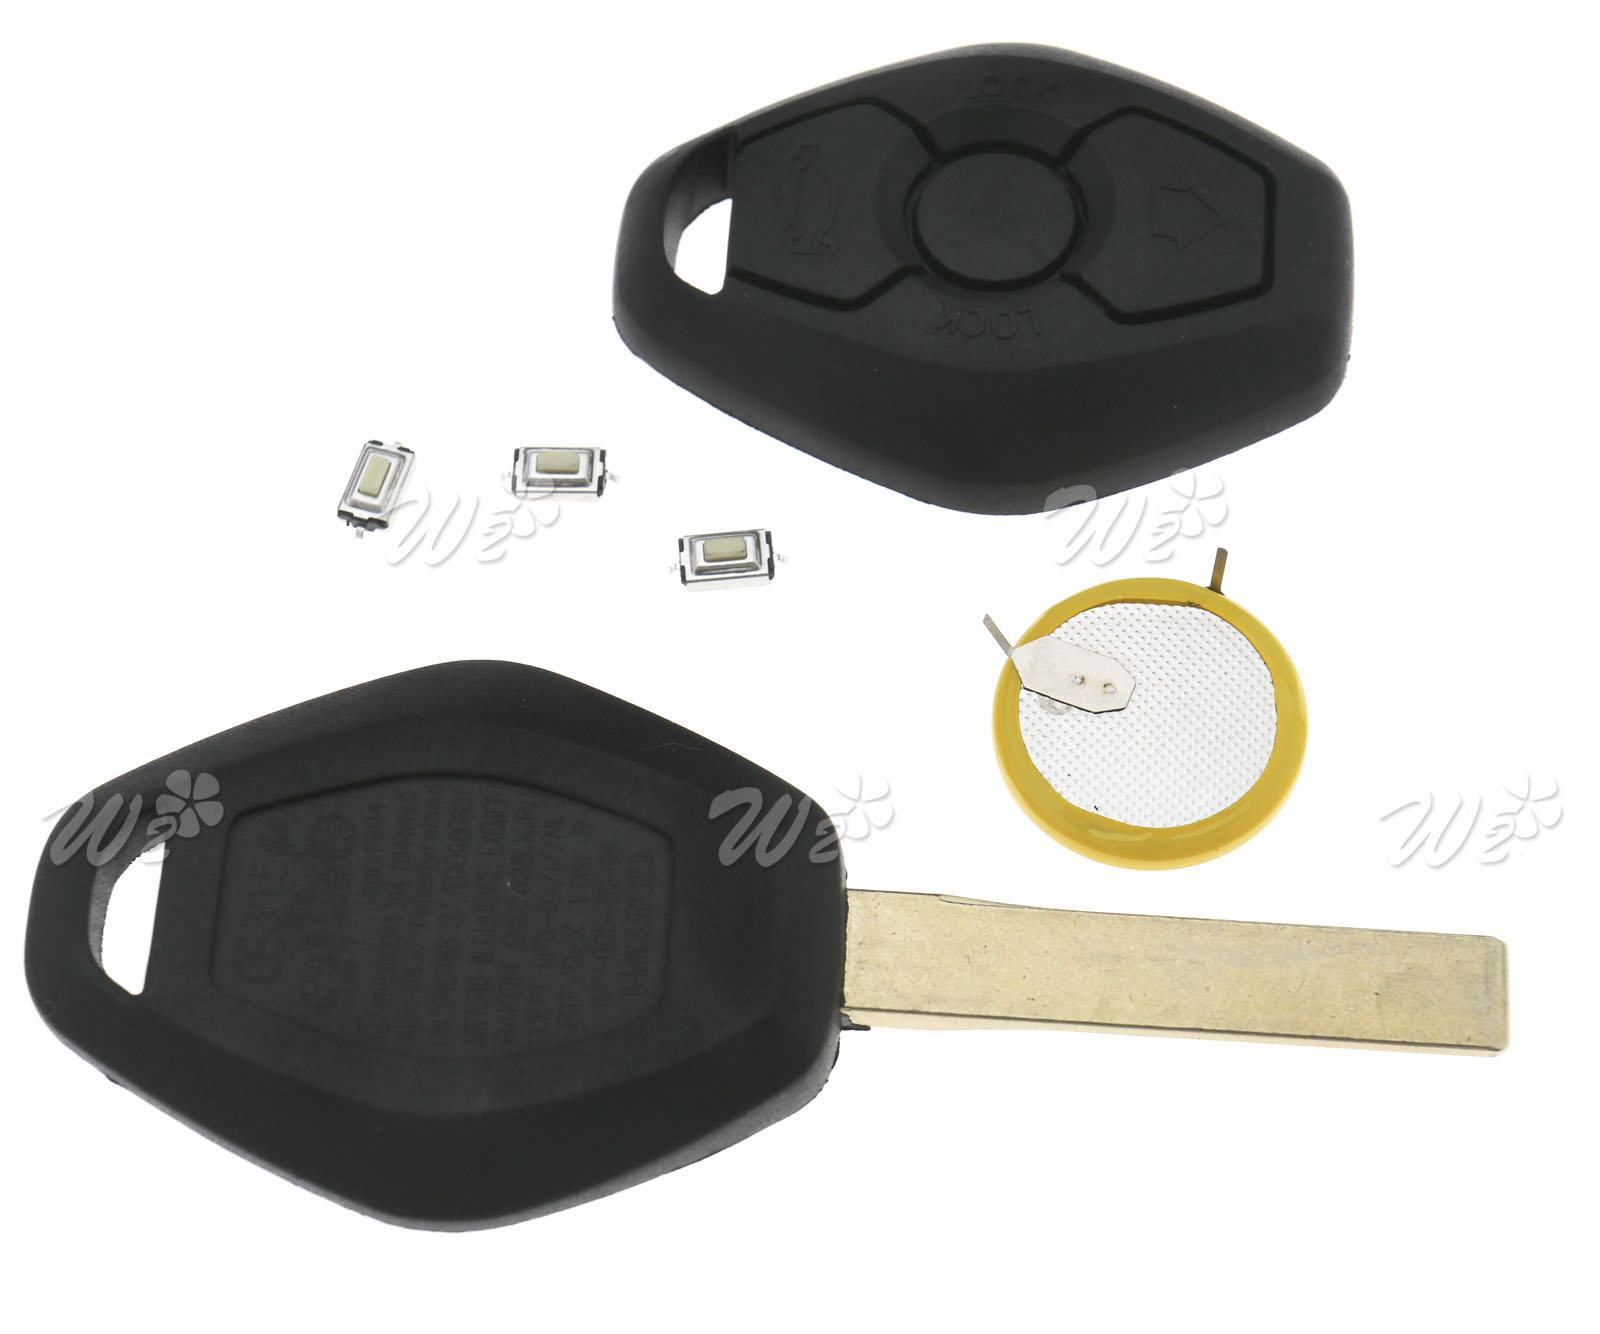 replacement 3 button remote key fob lir2025 battery kit. Black Bedroom Furniture Sets. Home Design Ideas